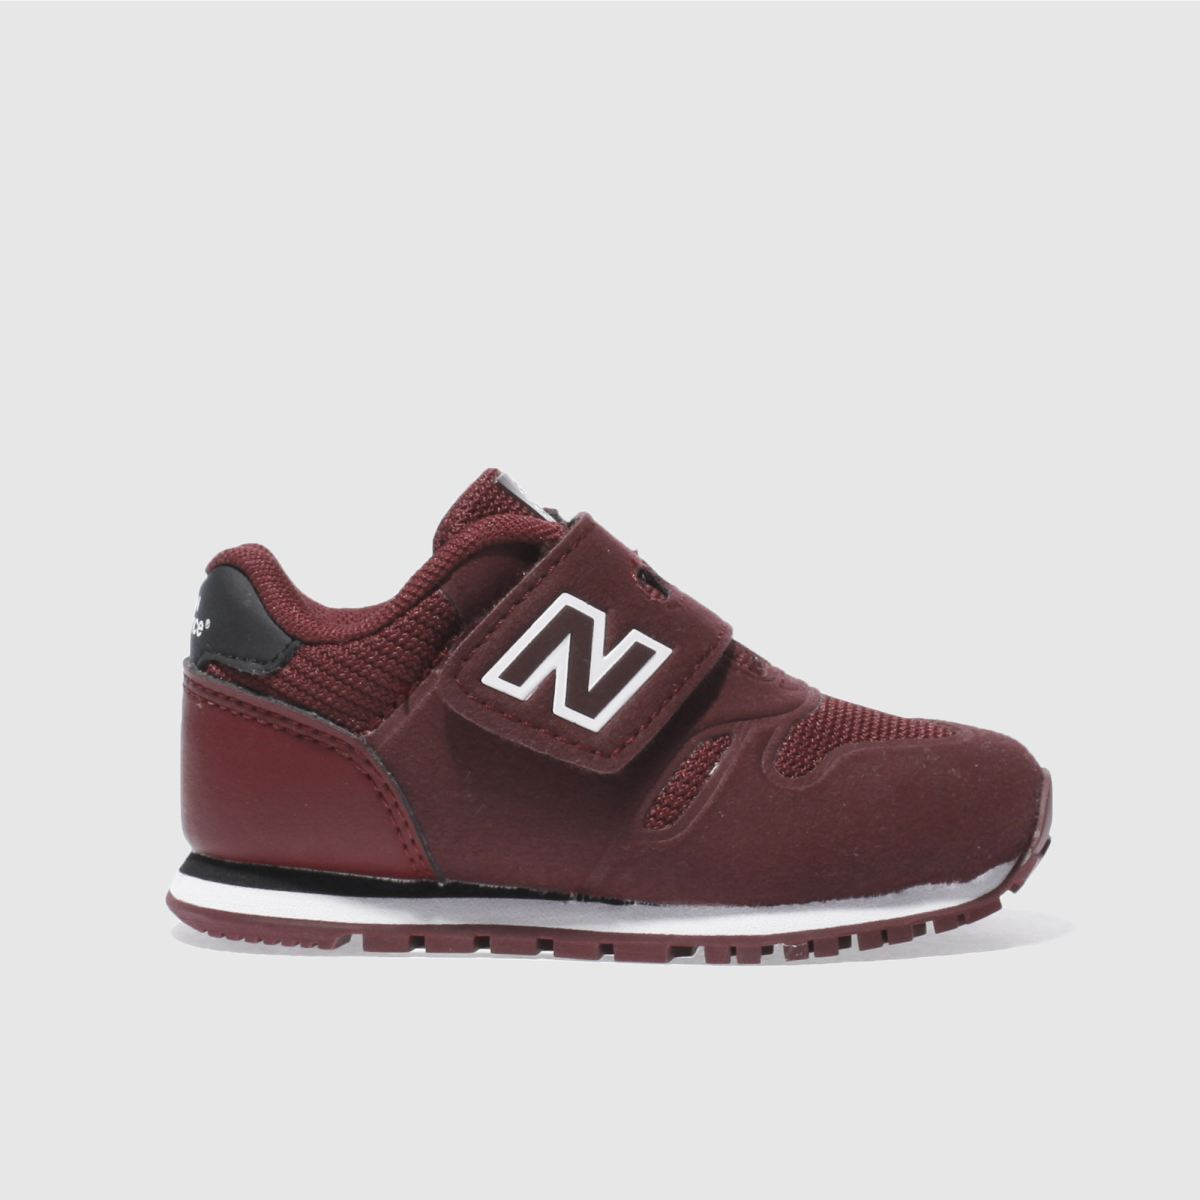 New Balance Burgundy 373 Unisex Toddler Toddler